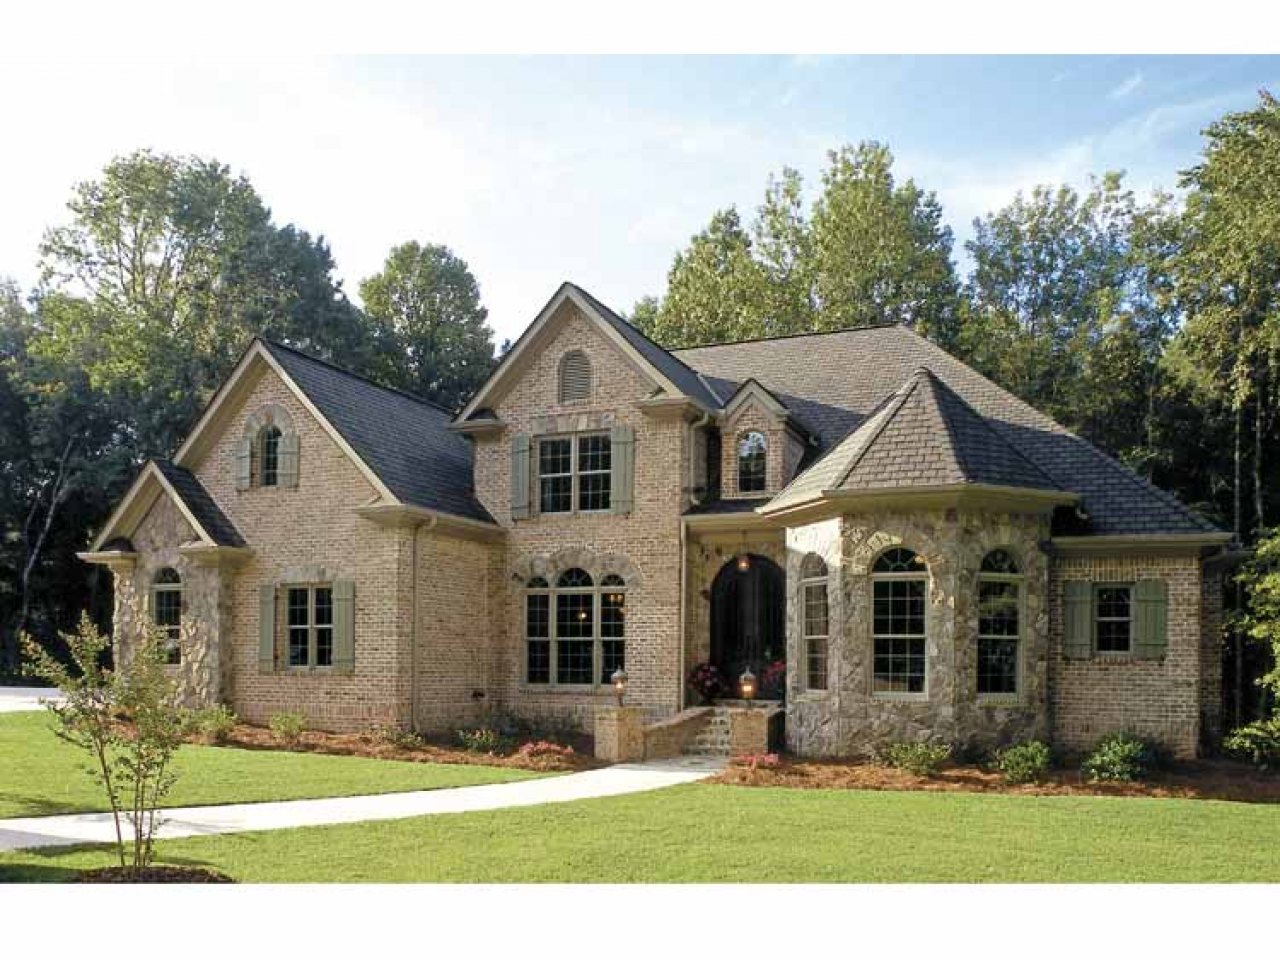 French country garden french country homes house plans for French country ranch home plans